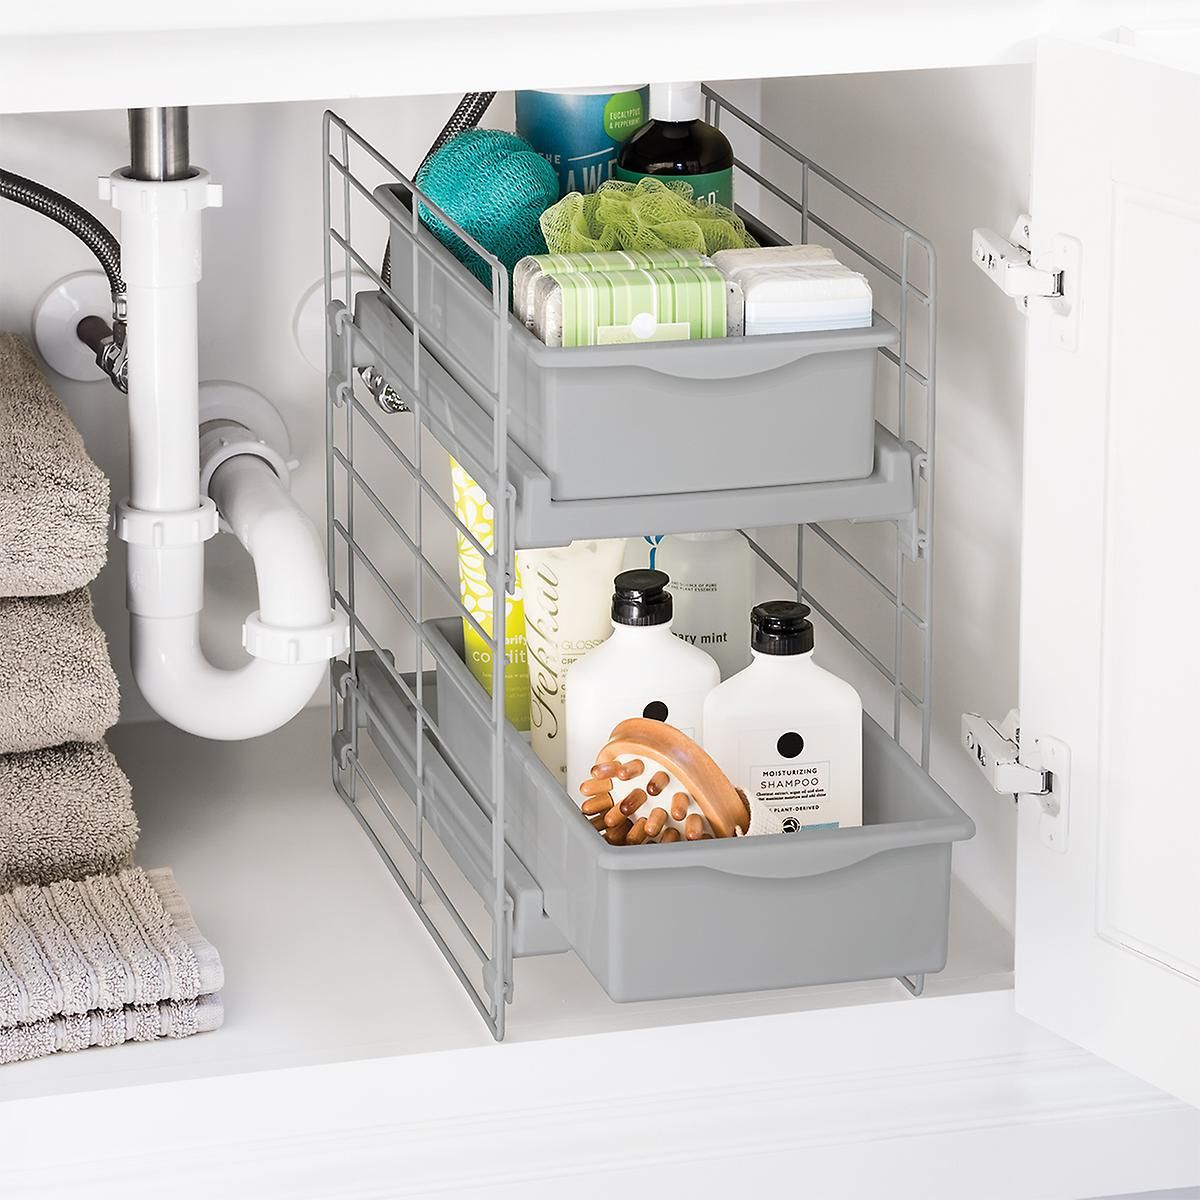 Pin By Heather Feinberg On Home Ideas Under Bathroom Sinks Under Sink Storage Bathroom Sink Organization